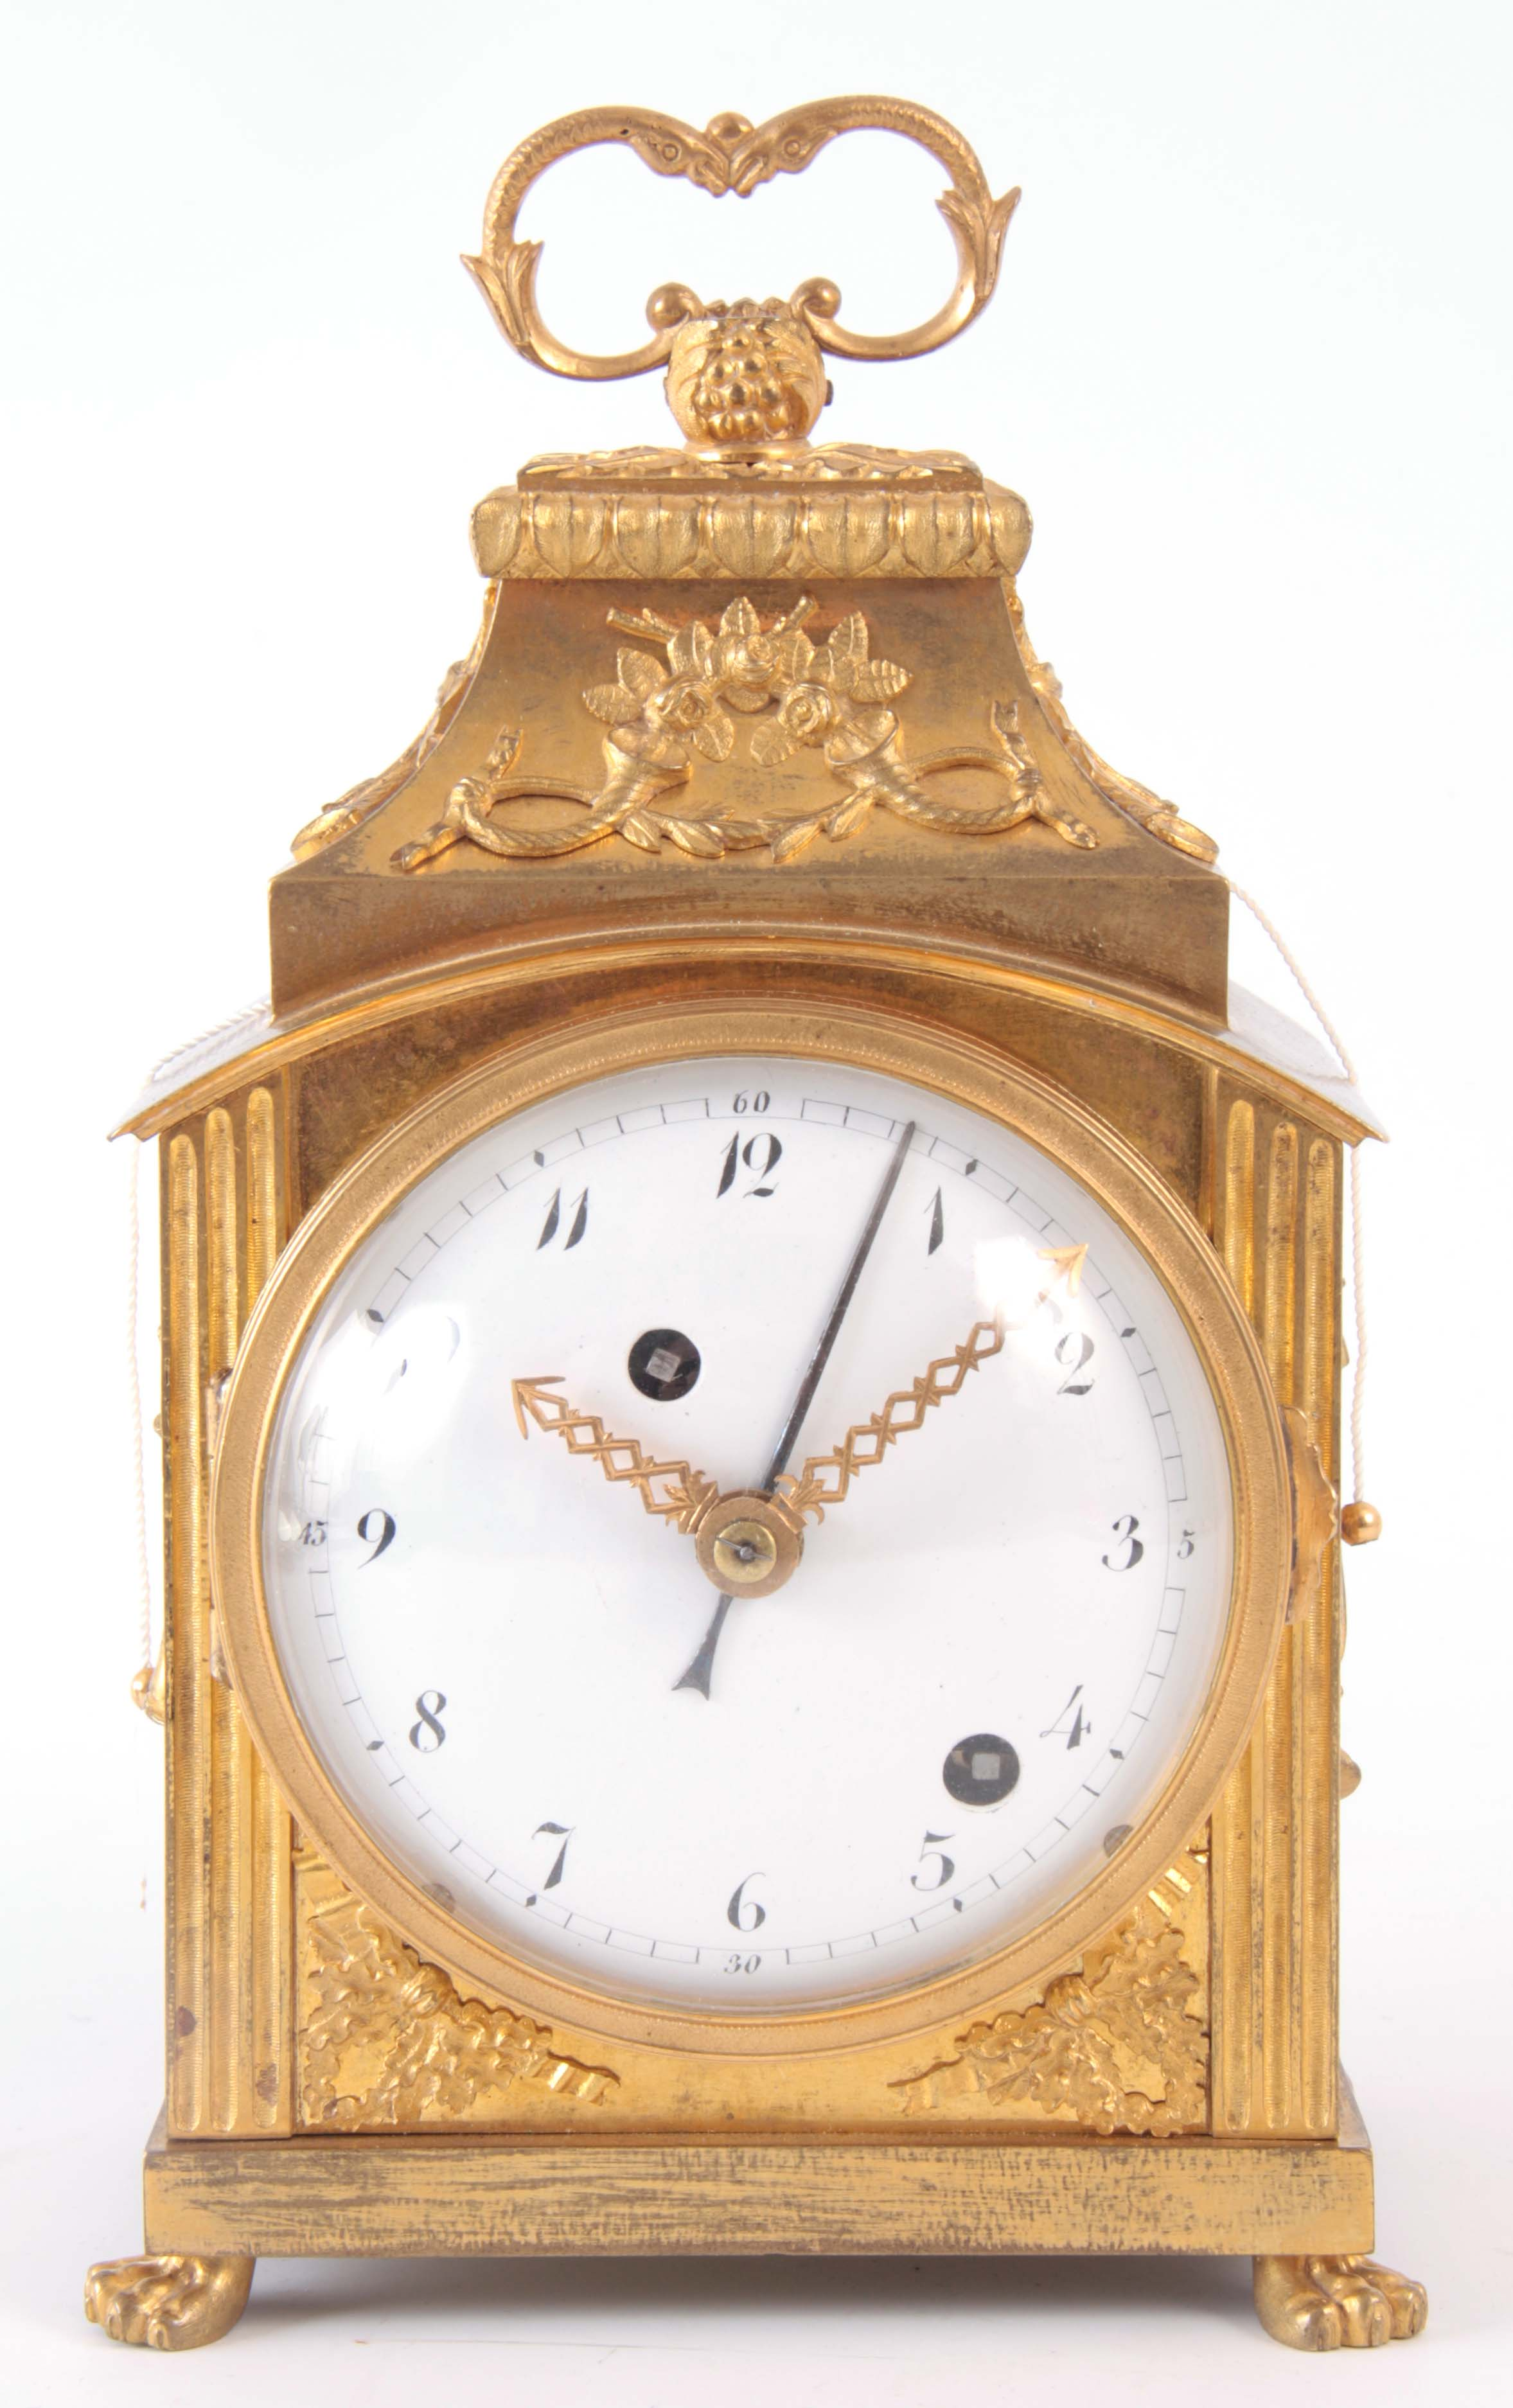 AN 18th CENTURY SWISS PENDULE D'OFFICIERS CARRIAGE CLOCK the ormolu case with applied mounts